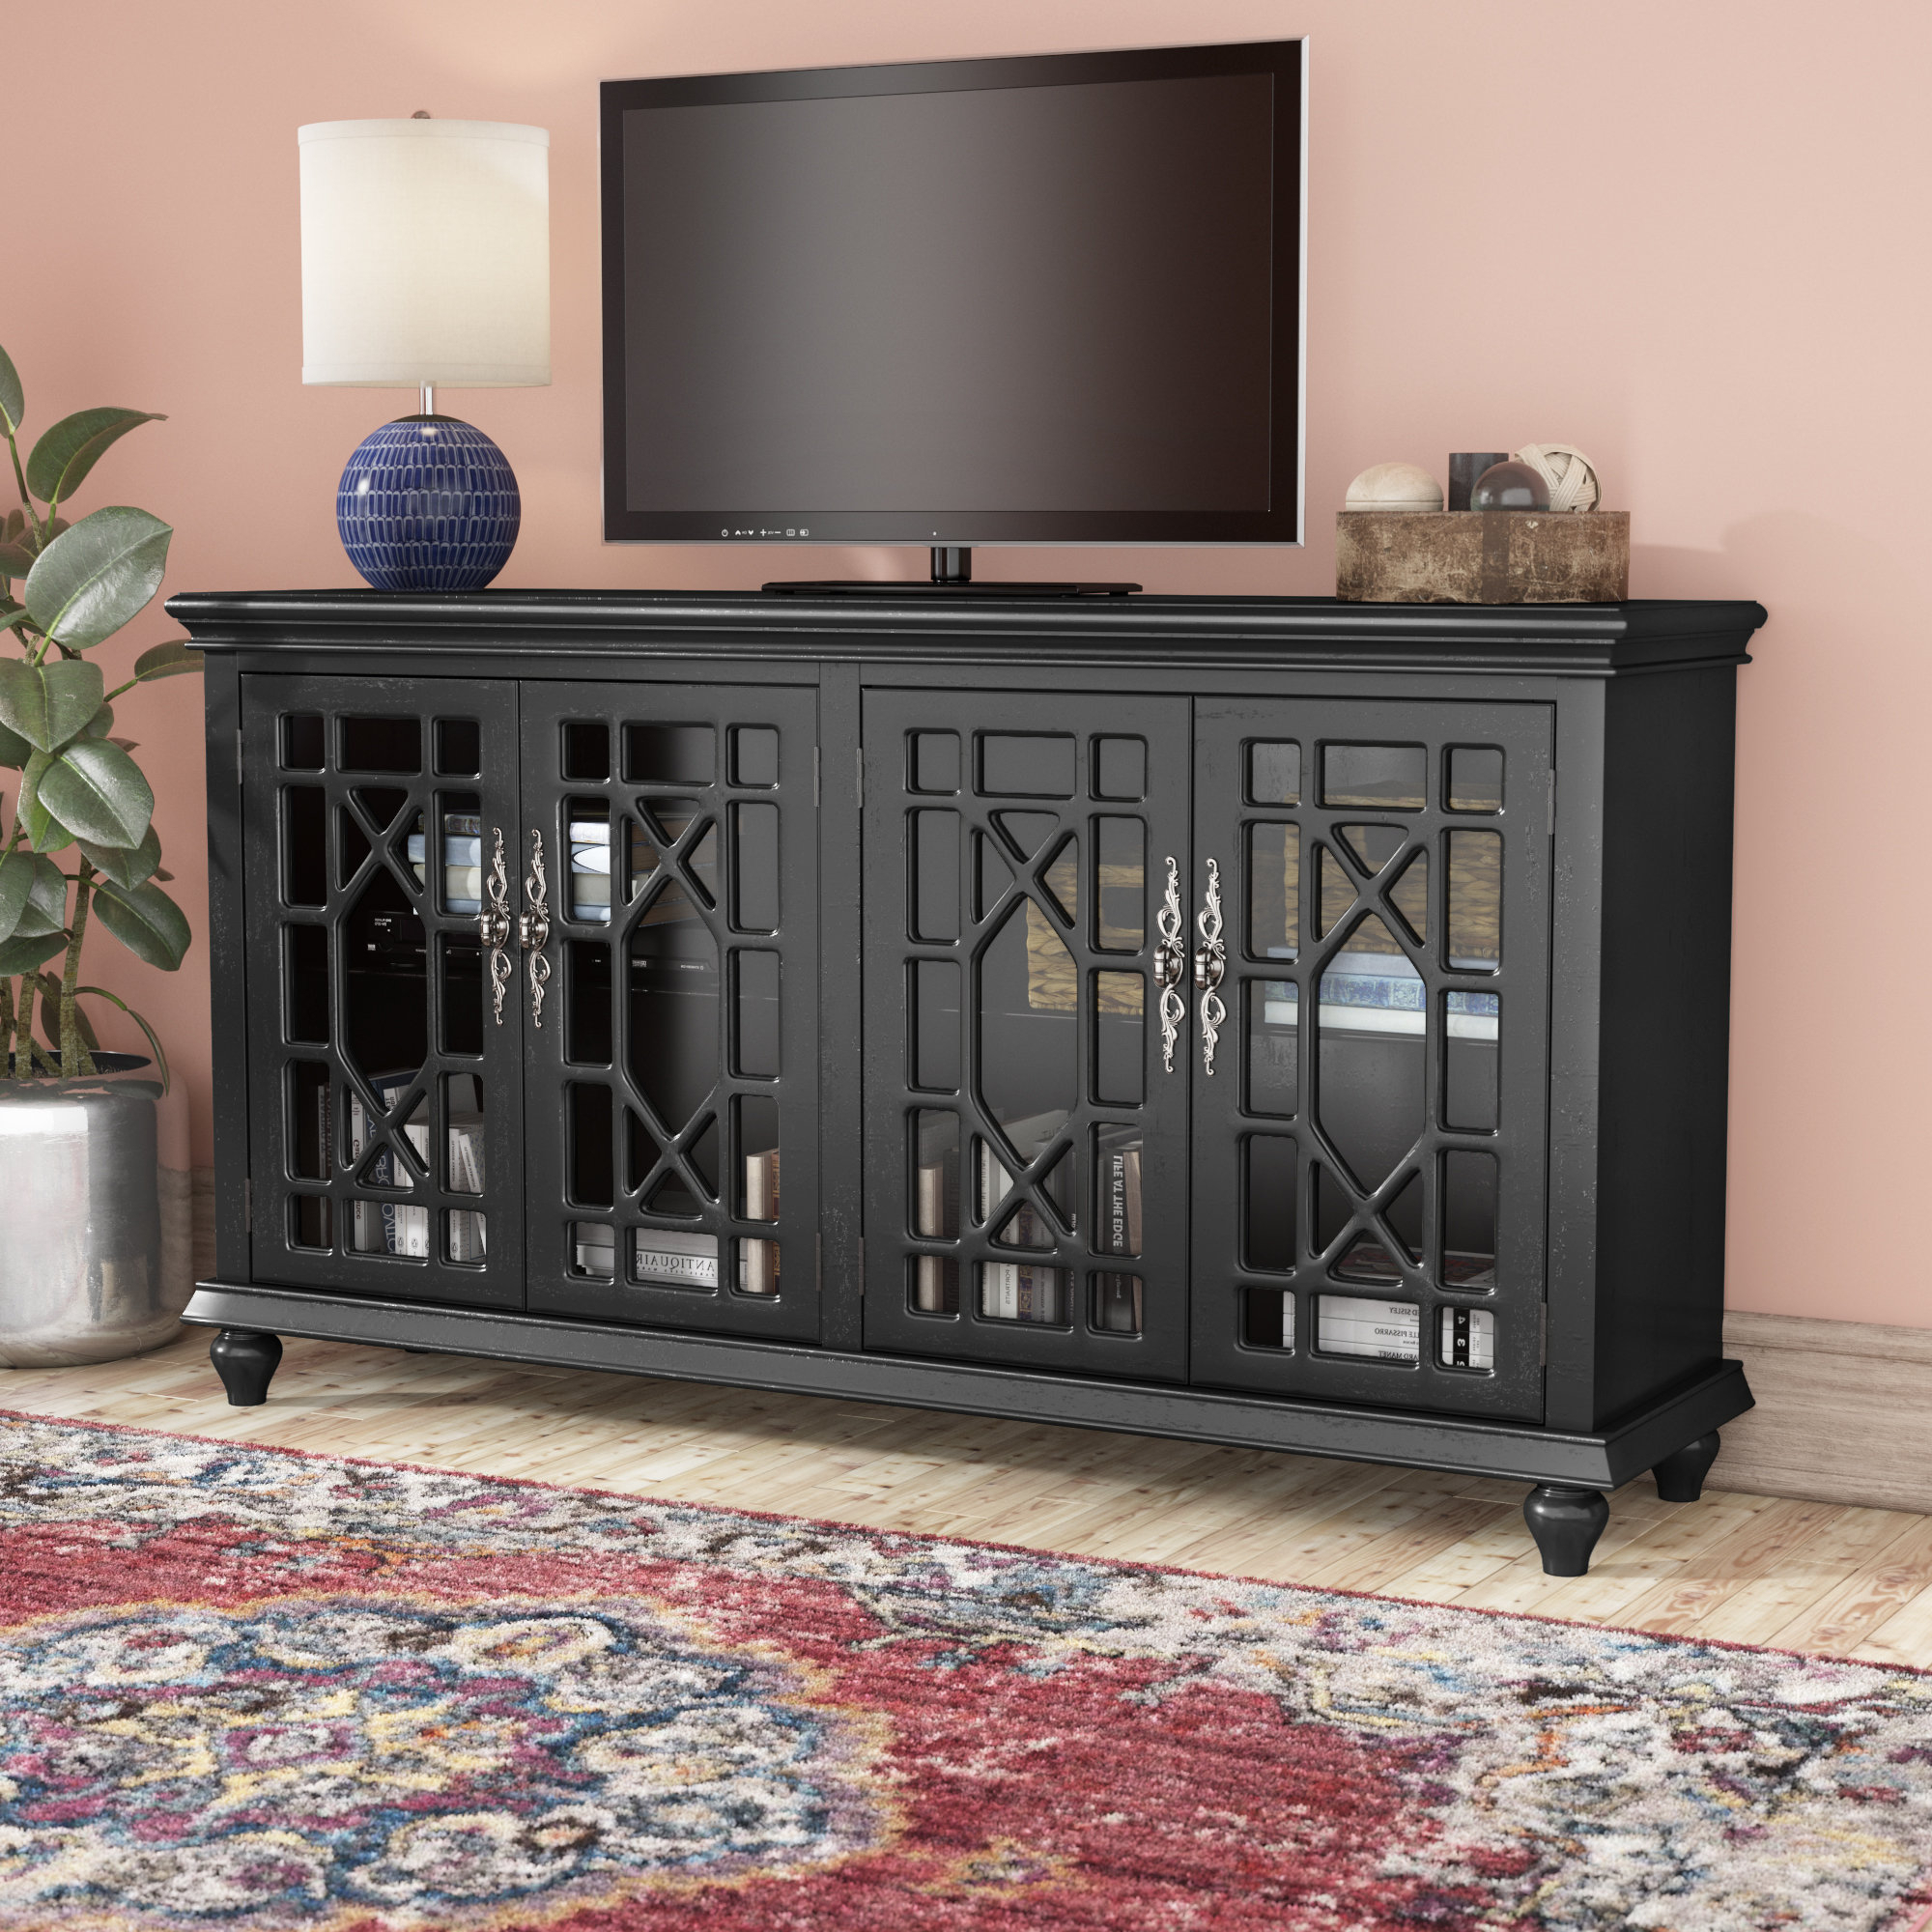 "Tv Stand Sideboard | Wayfair Inside Colefax Vintage Tv Stands For Tvs Up To 78"" (View 11 of 20)"